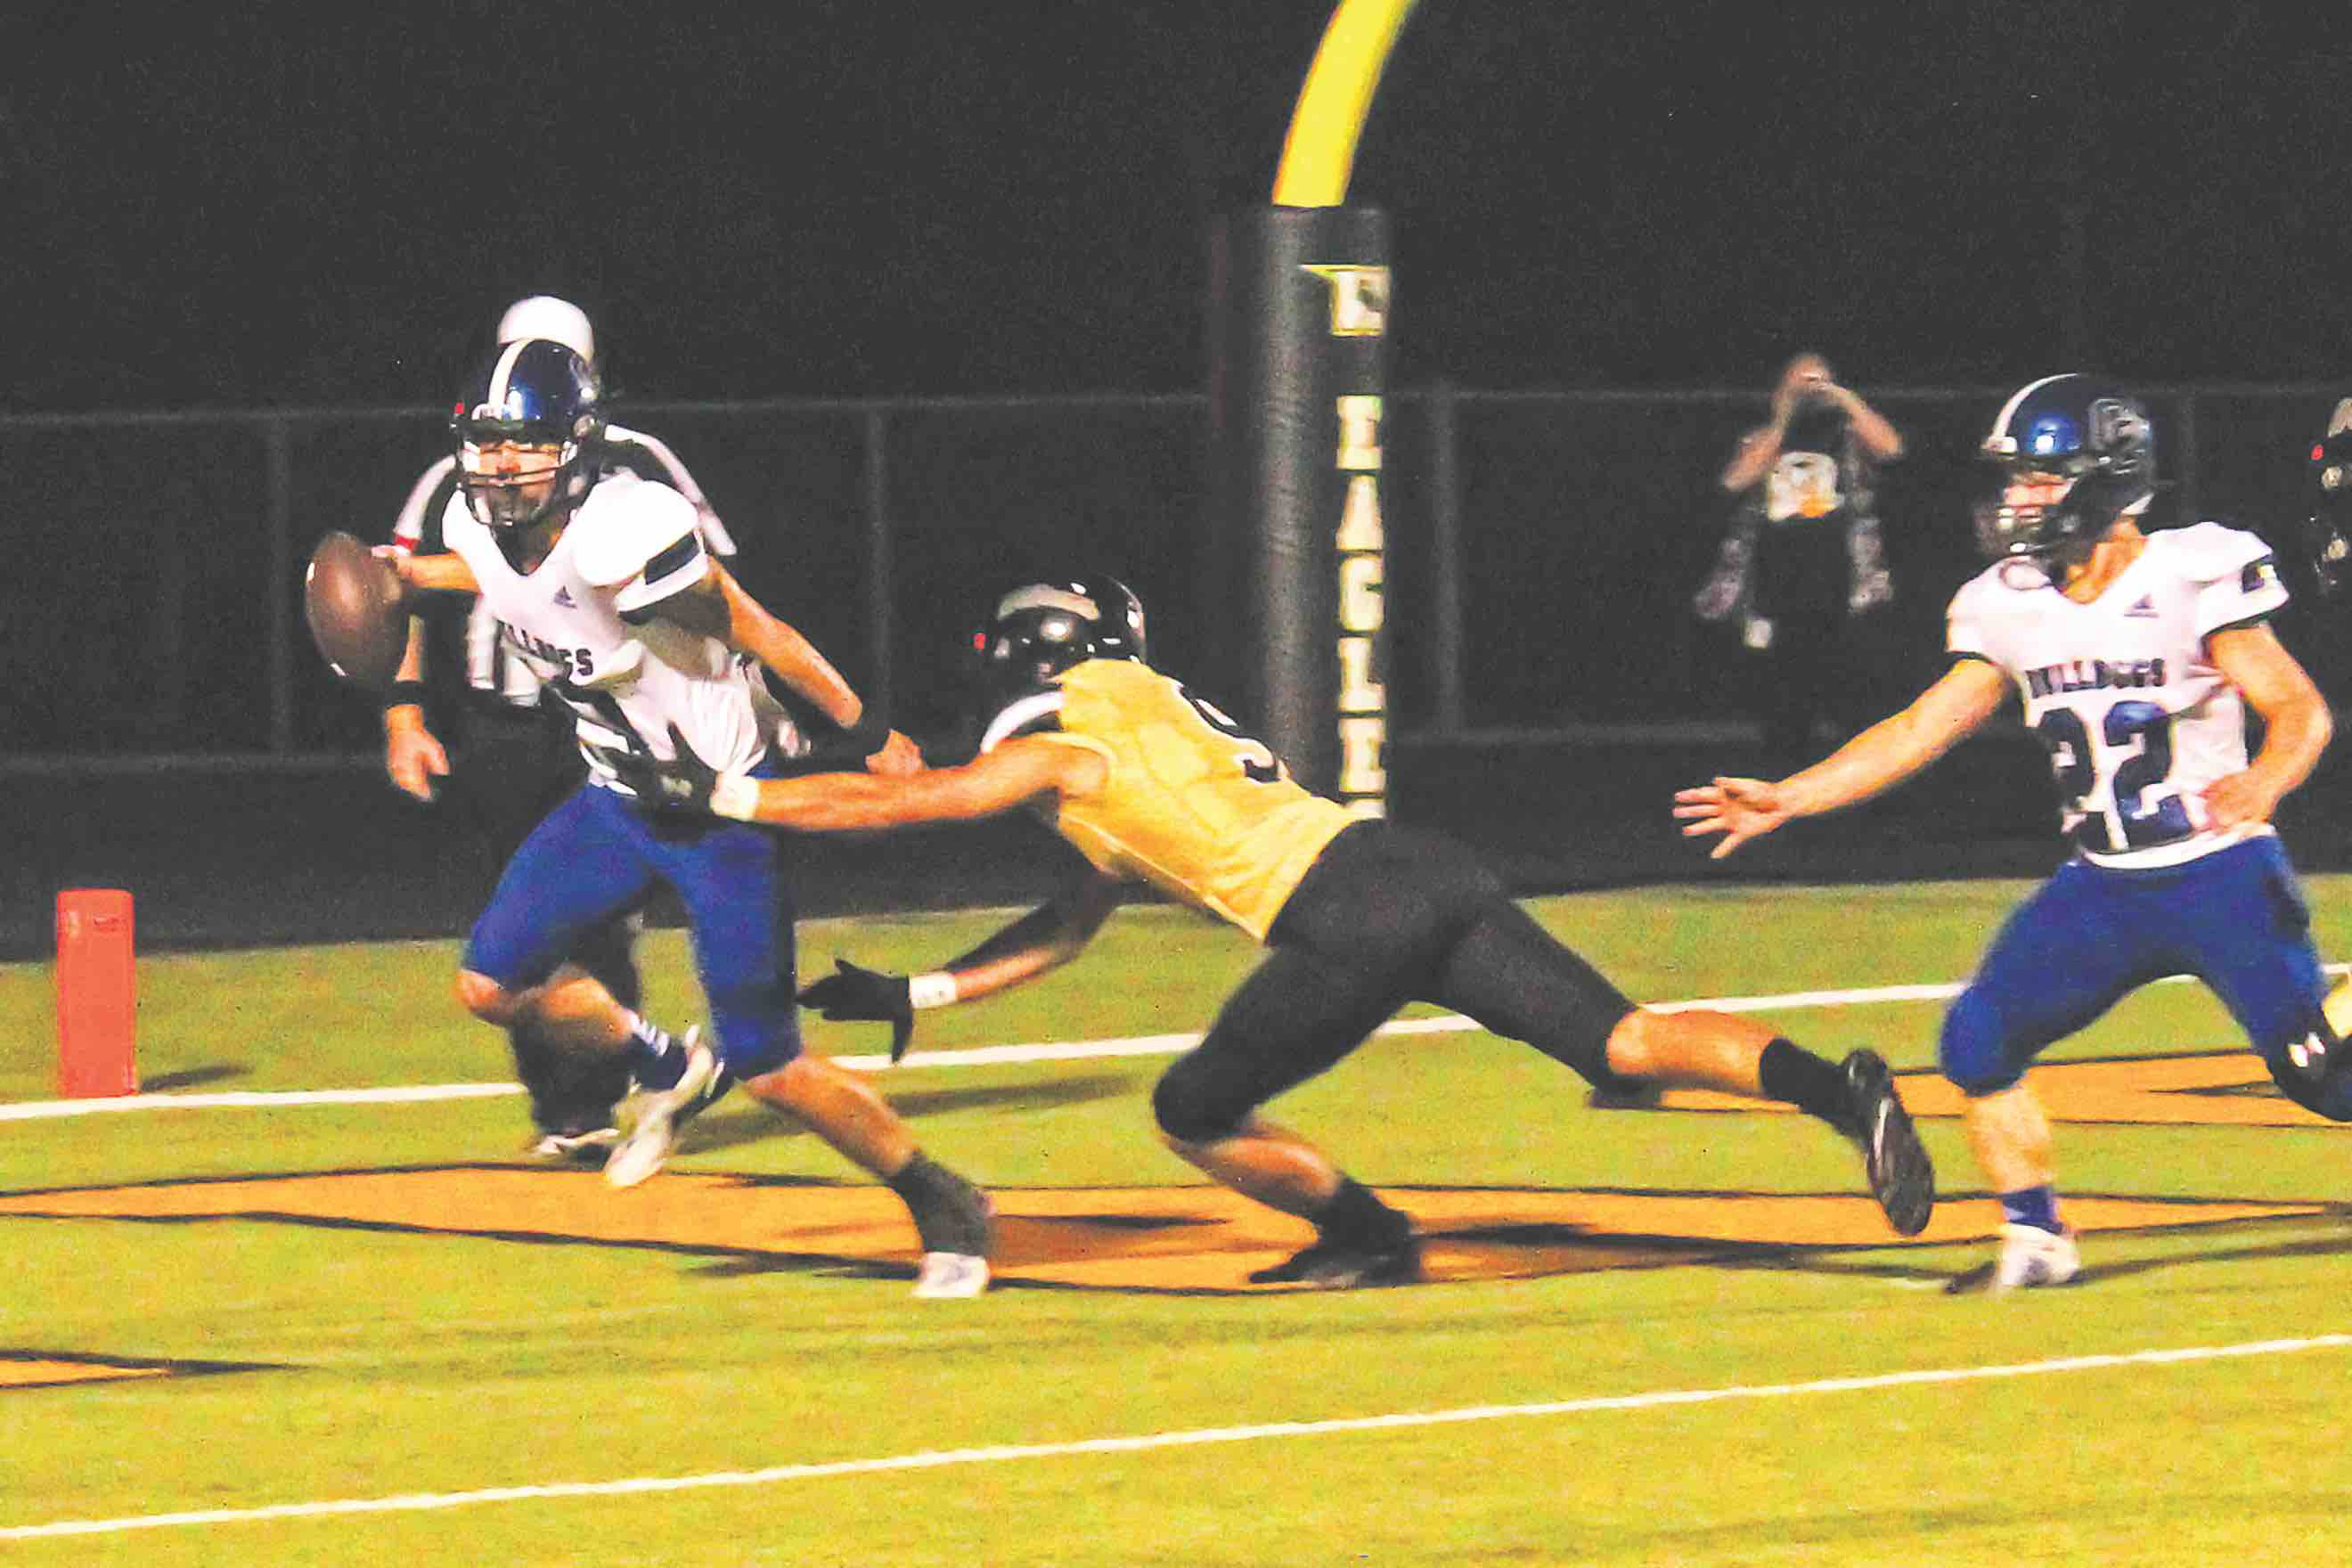 Woodville takes down Corrigan-Camden 48-7